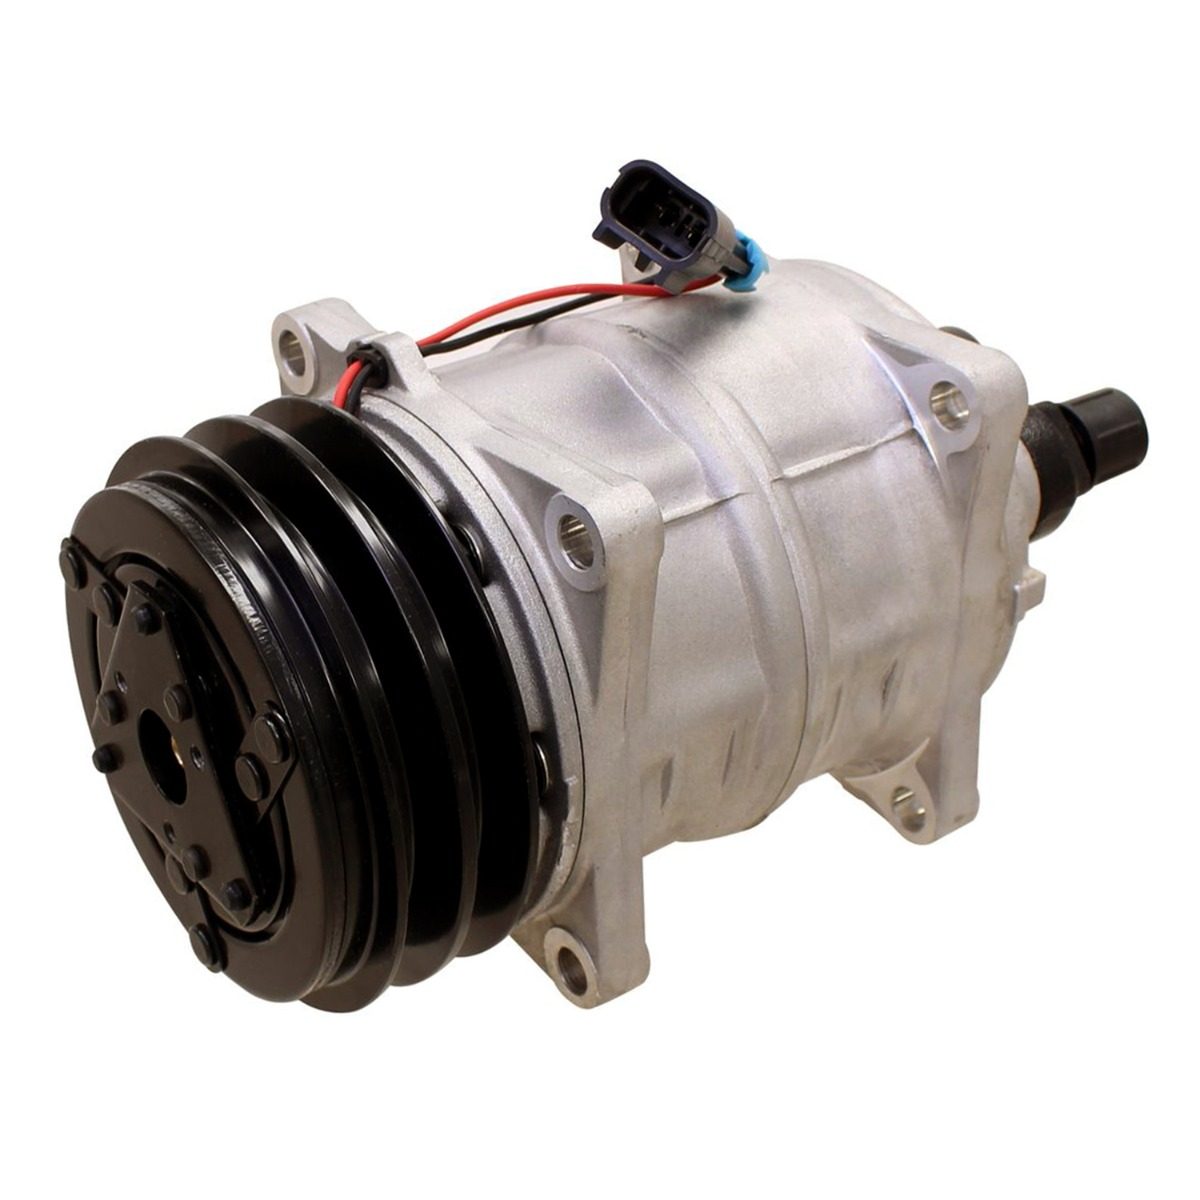 Air Conditioning Compressor 7136676 Compatible With Bobcat Skid Steer Loader S150 S185 S205 T180 T190 T190G